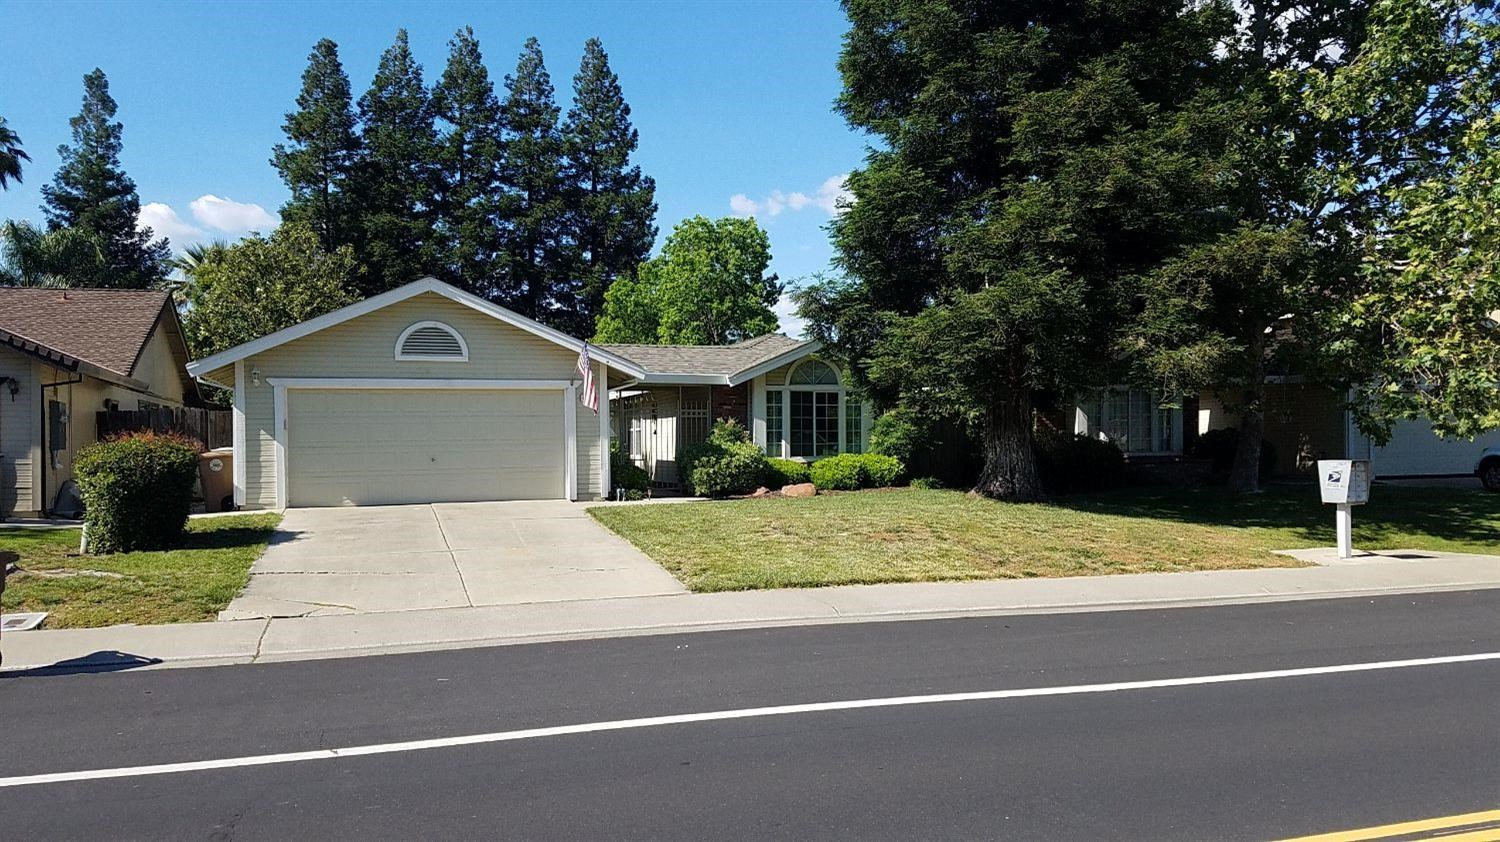 Home in Elk Grove, Sacramento County